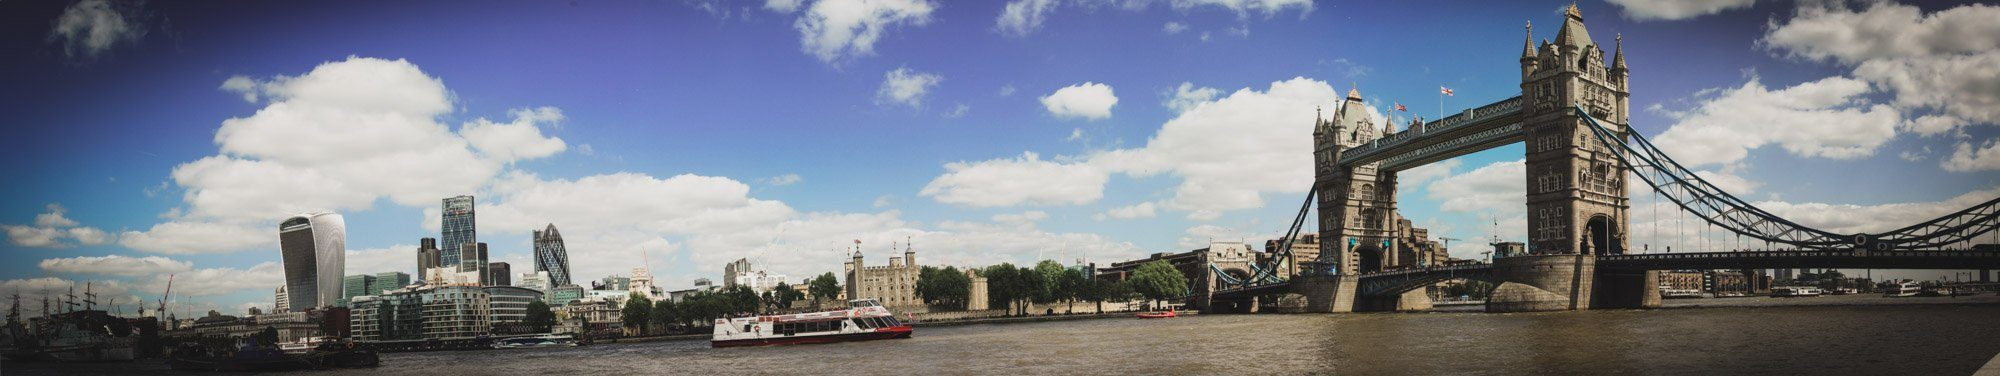 london-photos-83